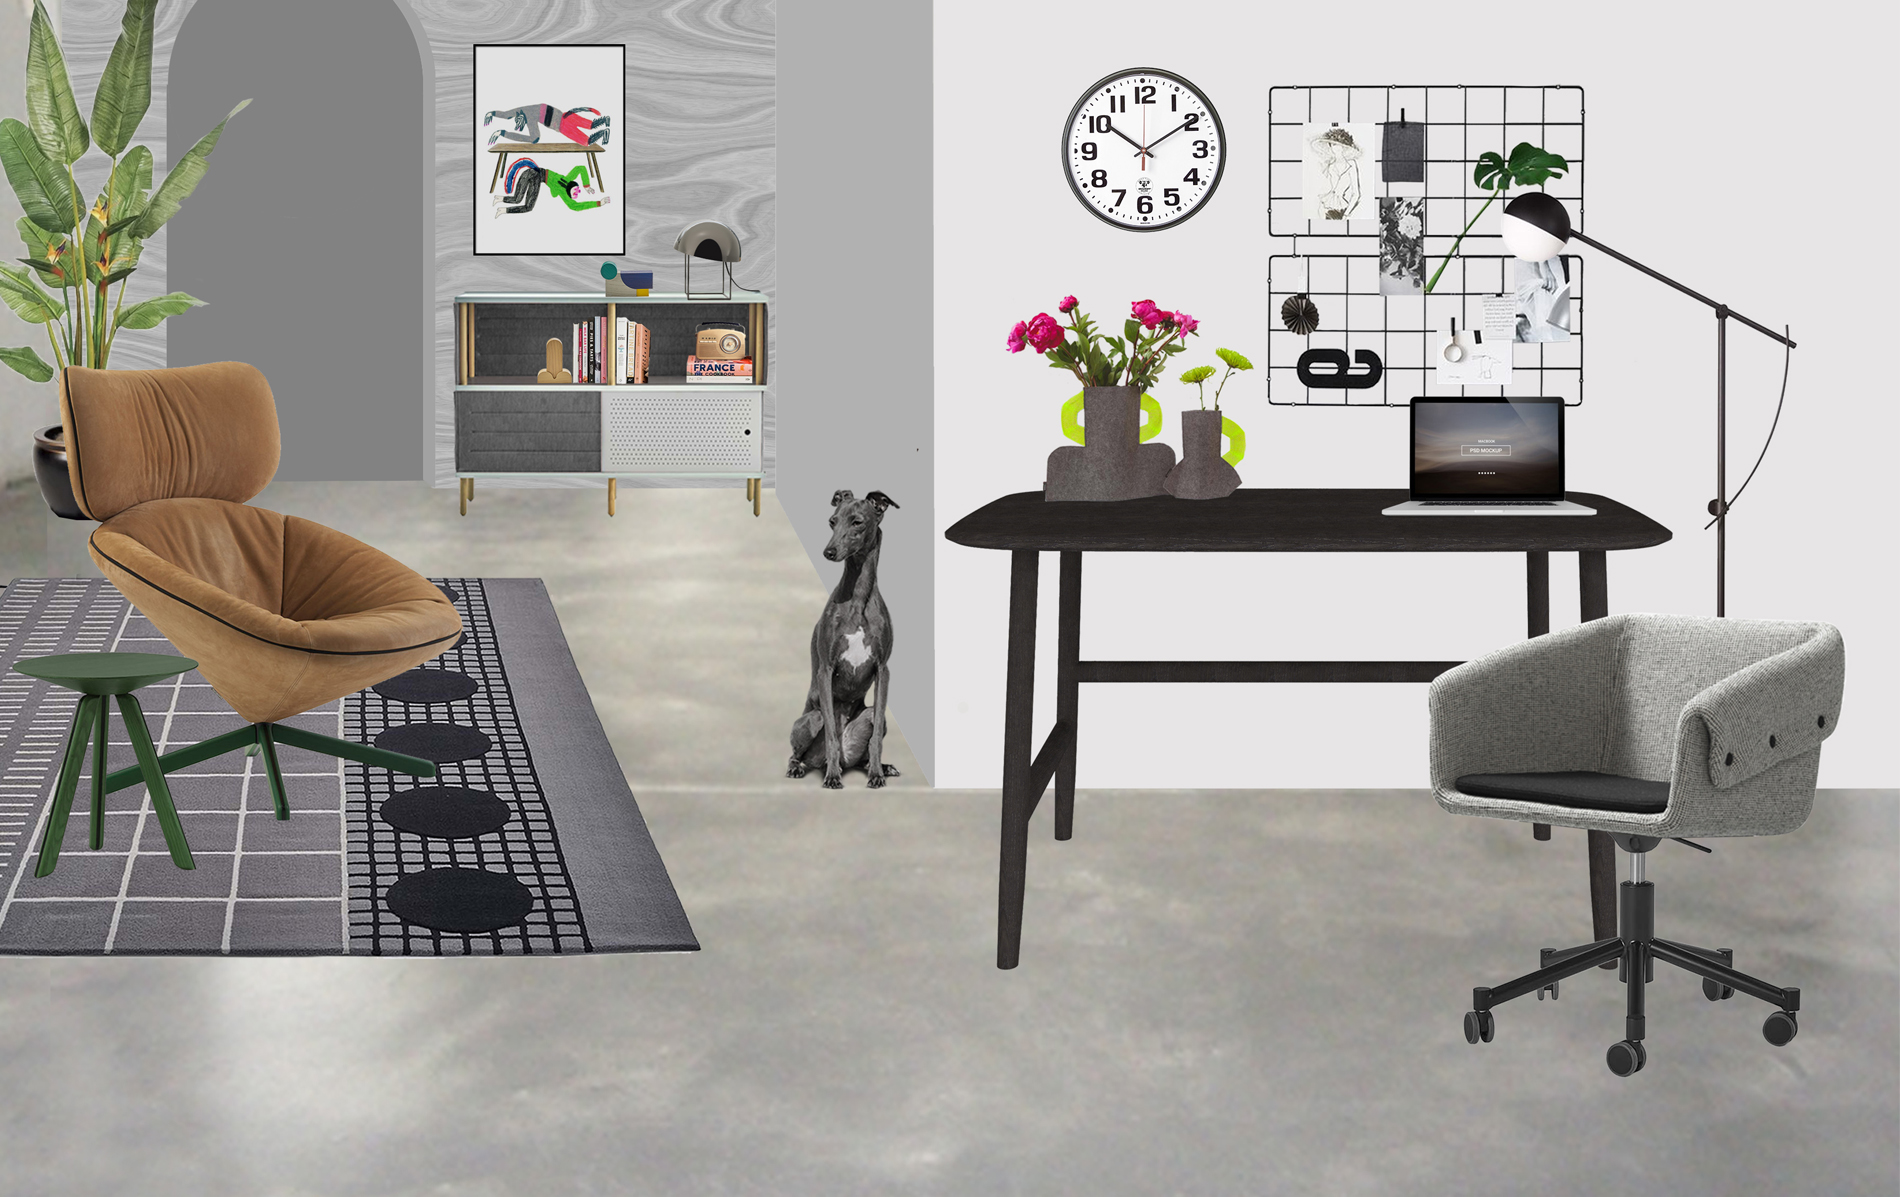 How to create a Home Office?